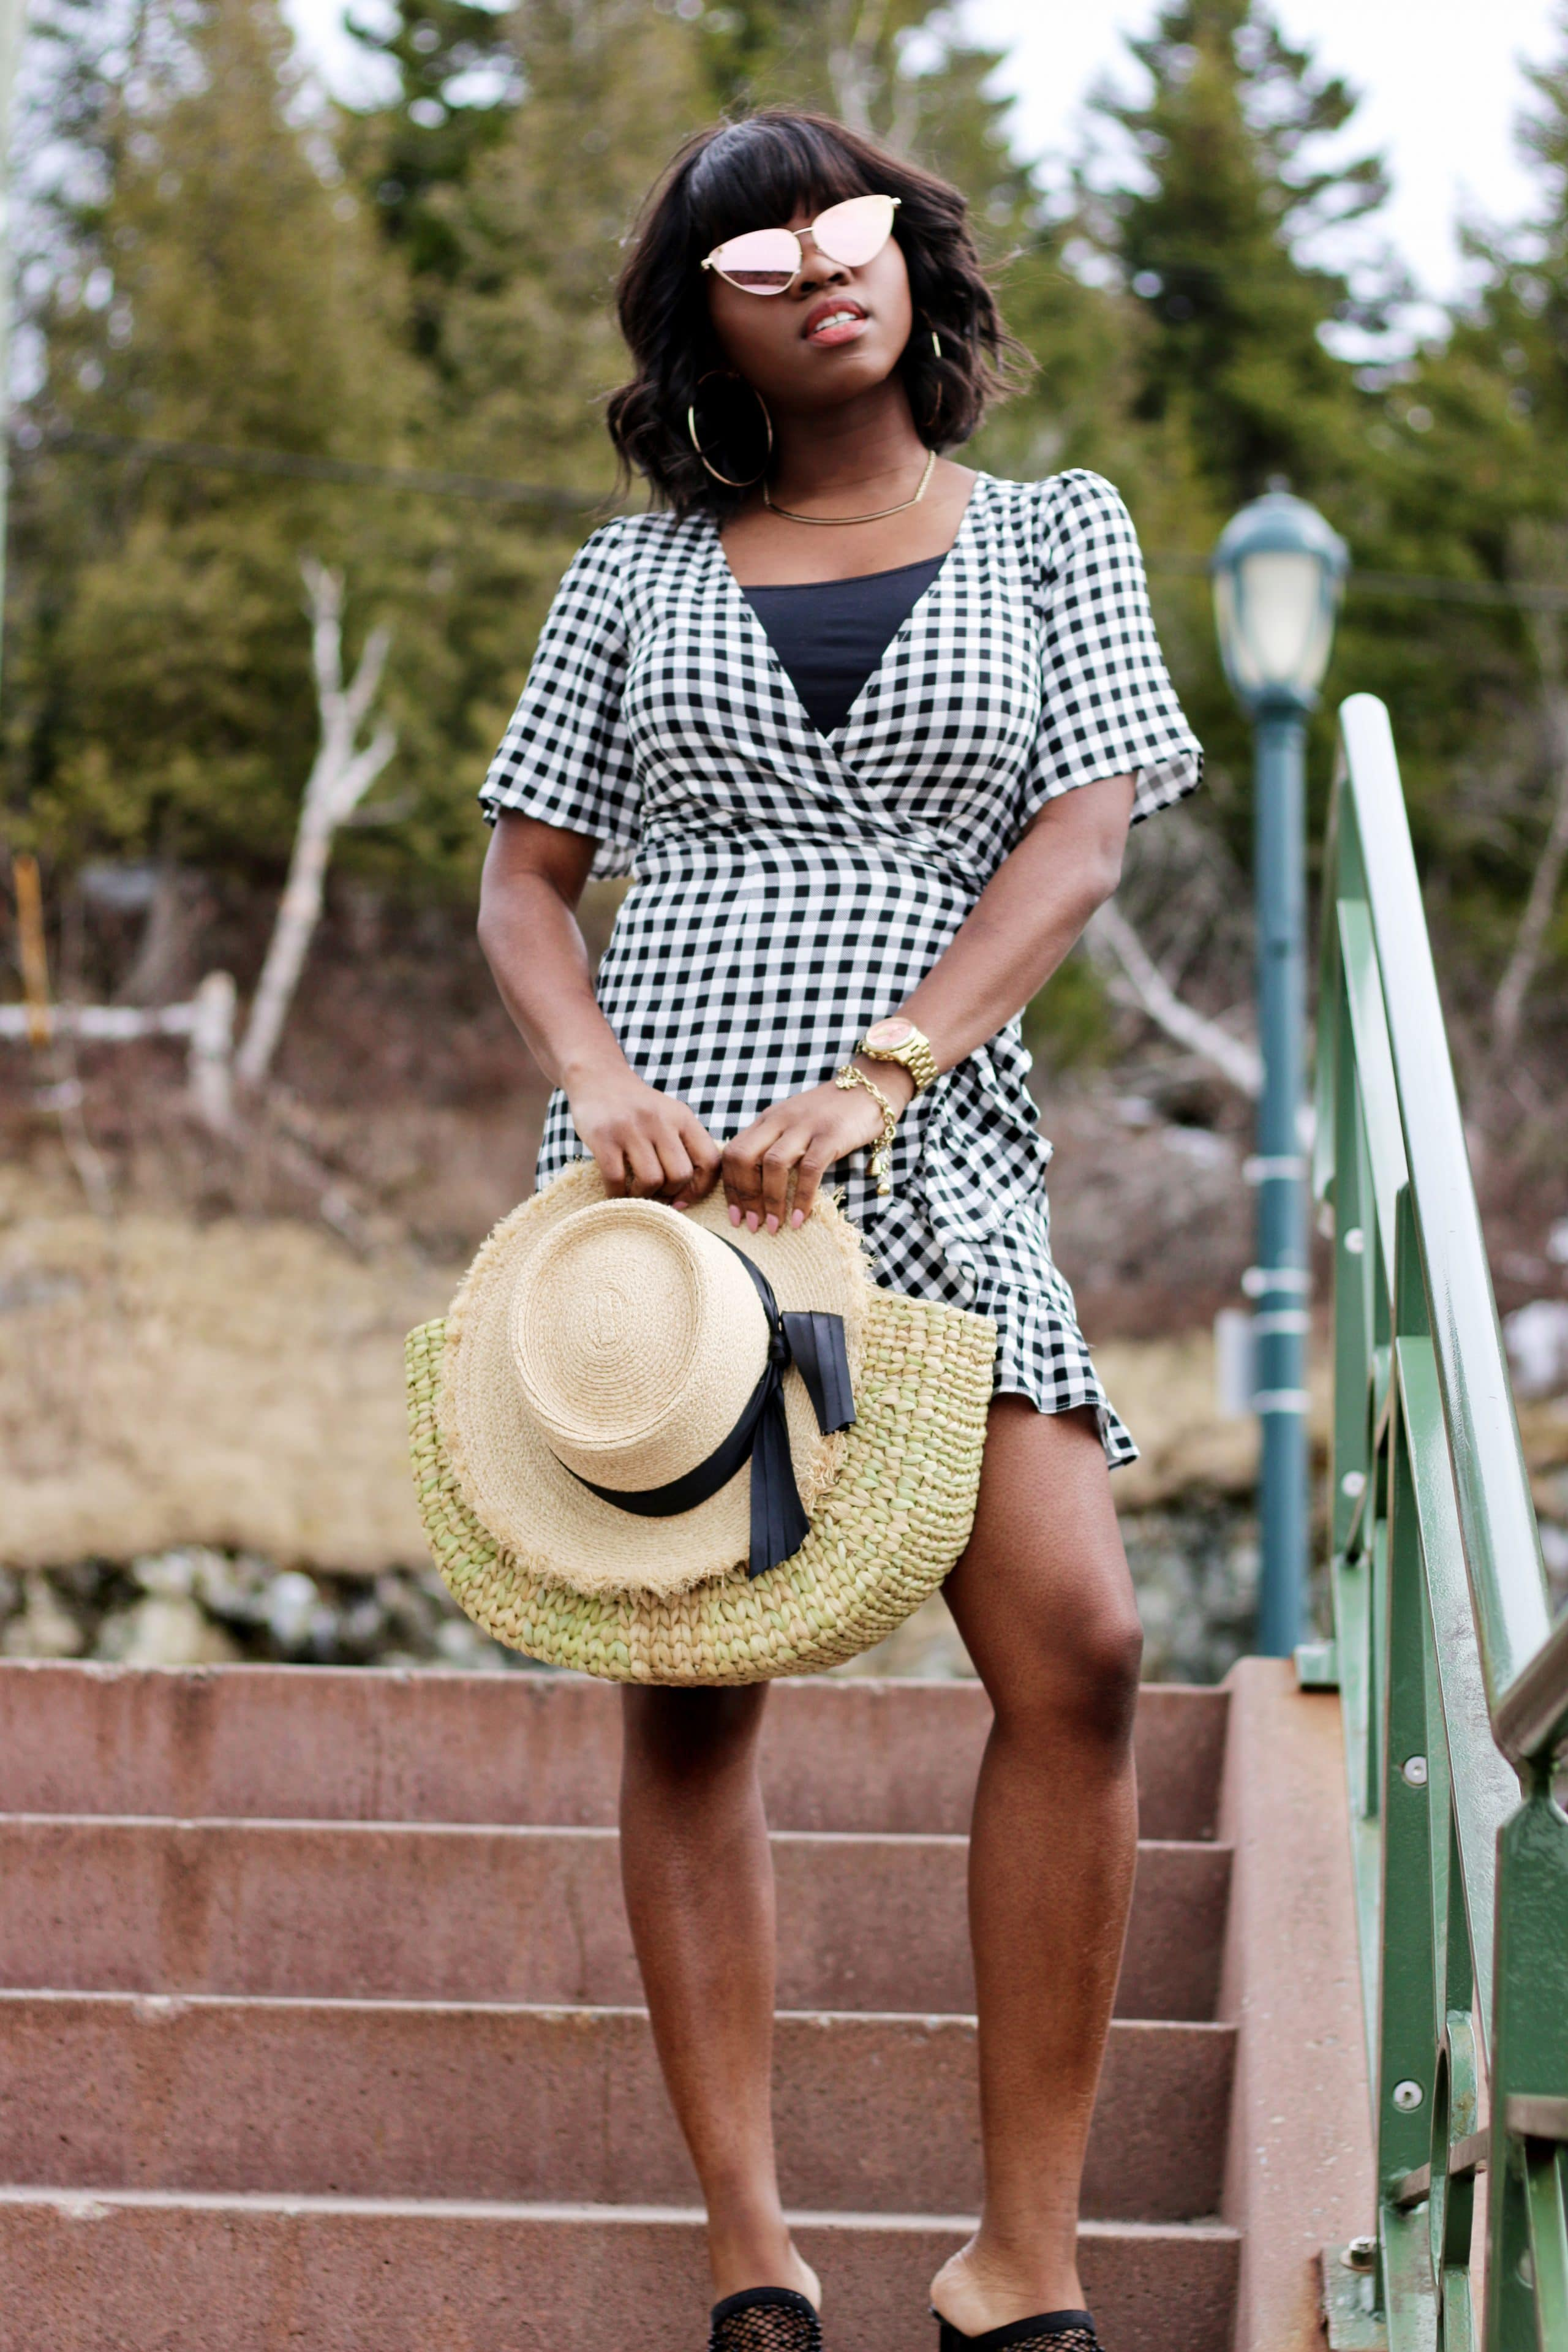 HOW TO STYLE GINGHAM